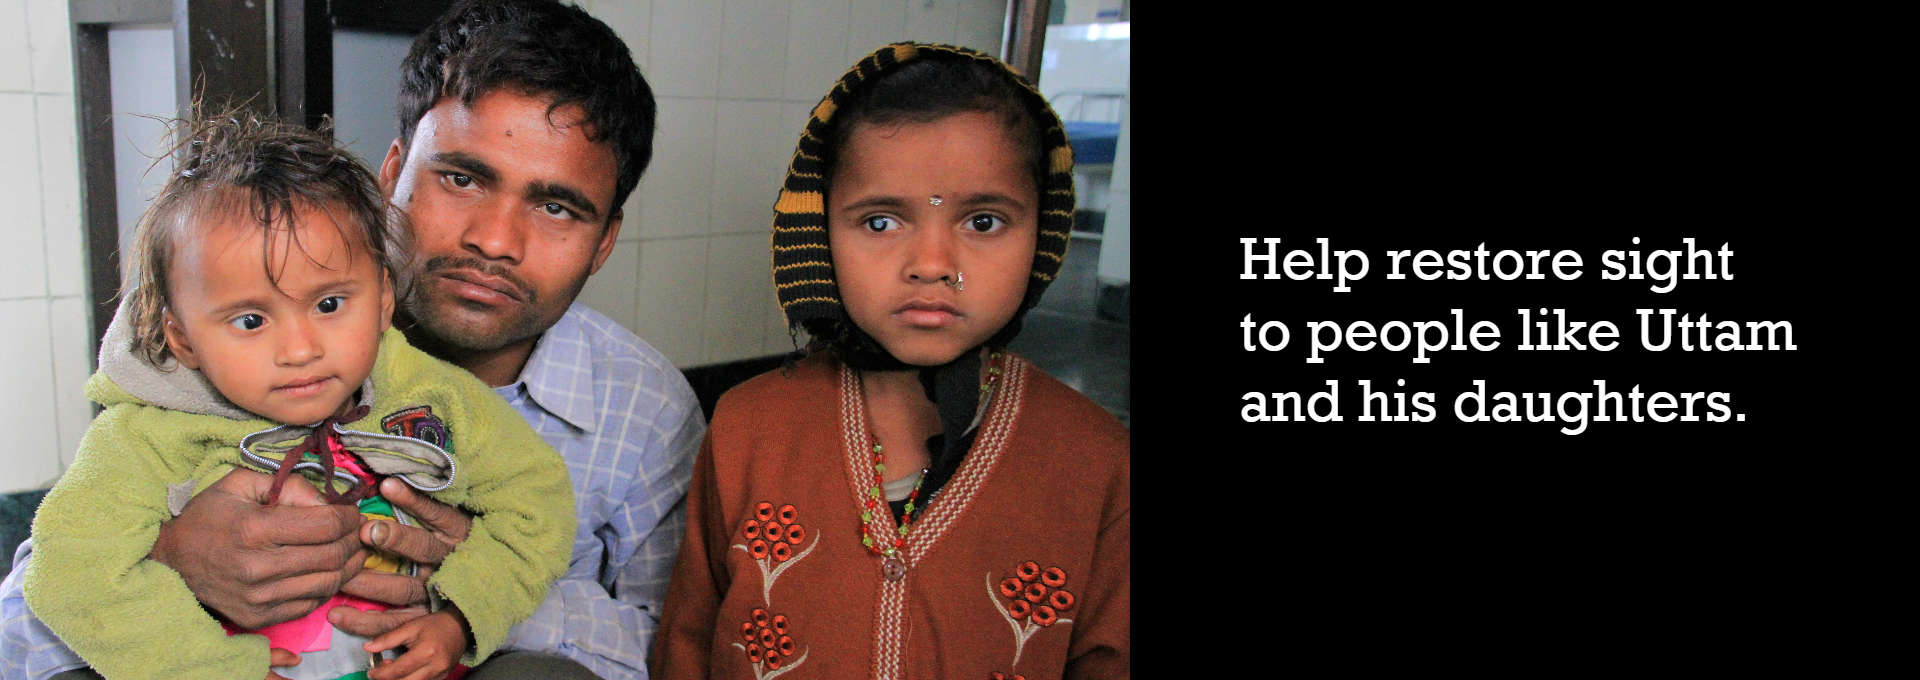 Uttam and his daughters need cataract surgeries to see again